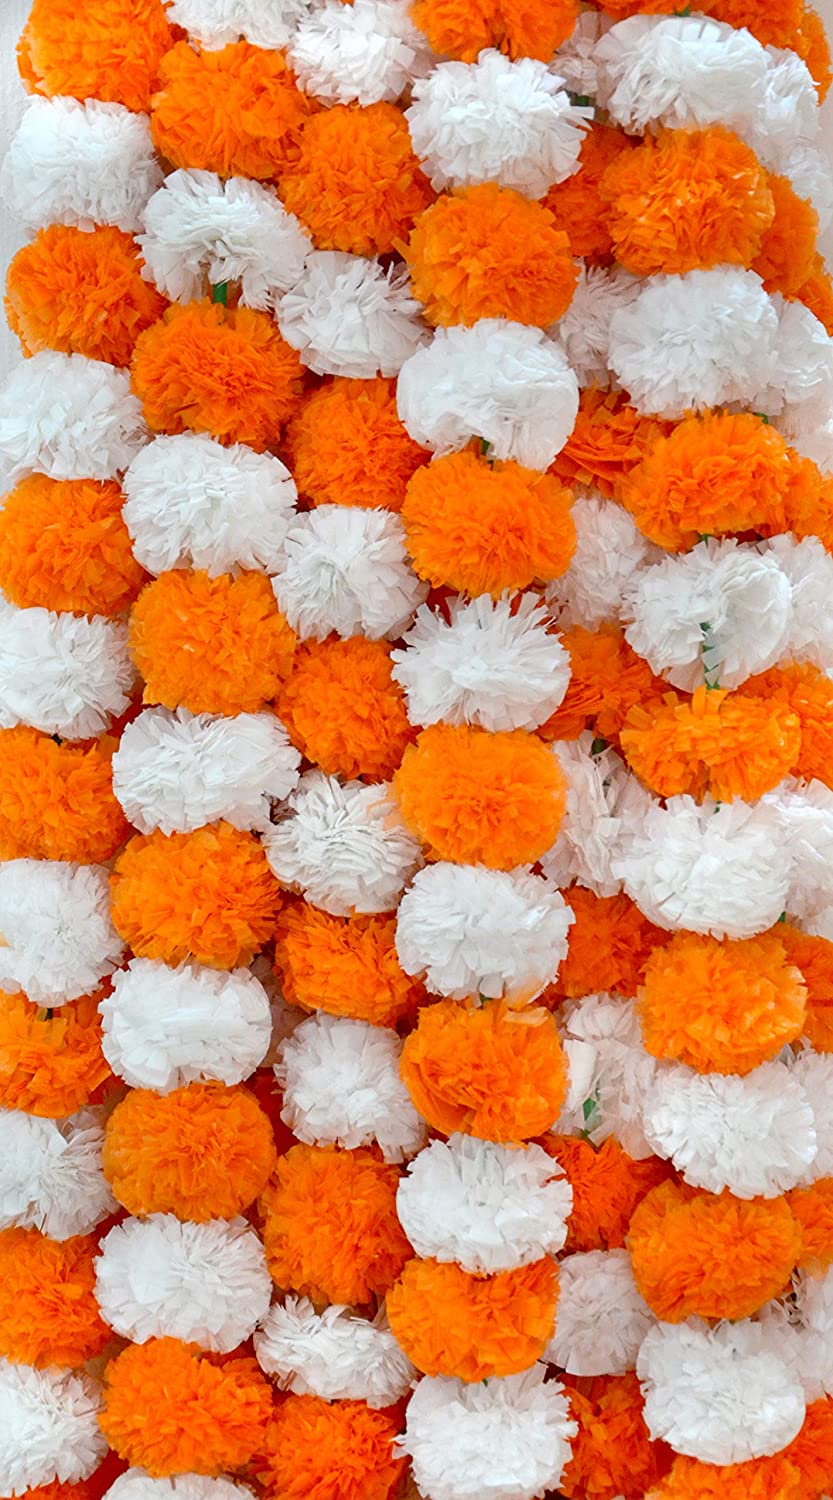 DECORATION CRAFT Pack of 5 Artificial Dark Orange and White Marigold Flower Garlands 5 Feet Long for Parties Indian Weddings Indian Theme Decorations Home Decoration Photo Prop Diwali Indian Festival